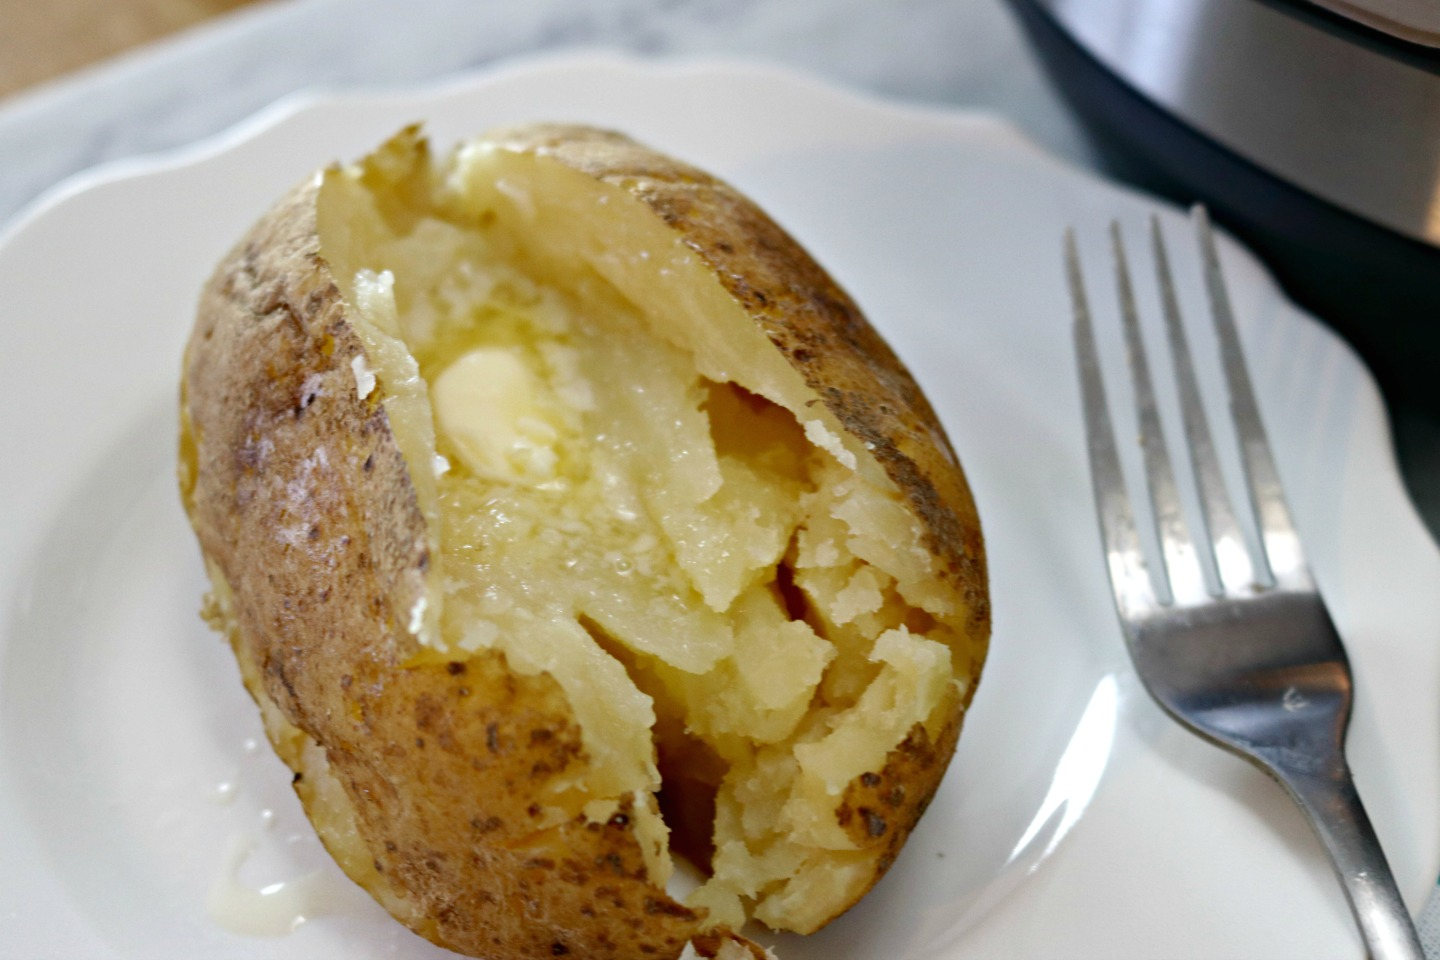 https://www.mom4real.com/wp-content/uploads/2017/04/baked-potato-instant-pot.jpg